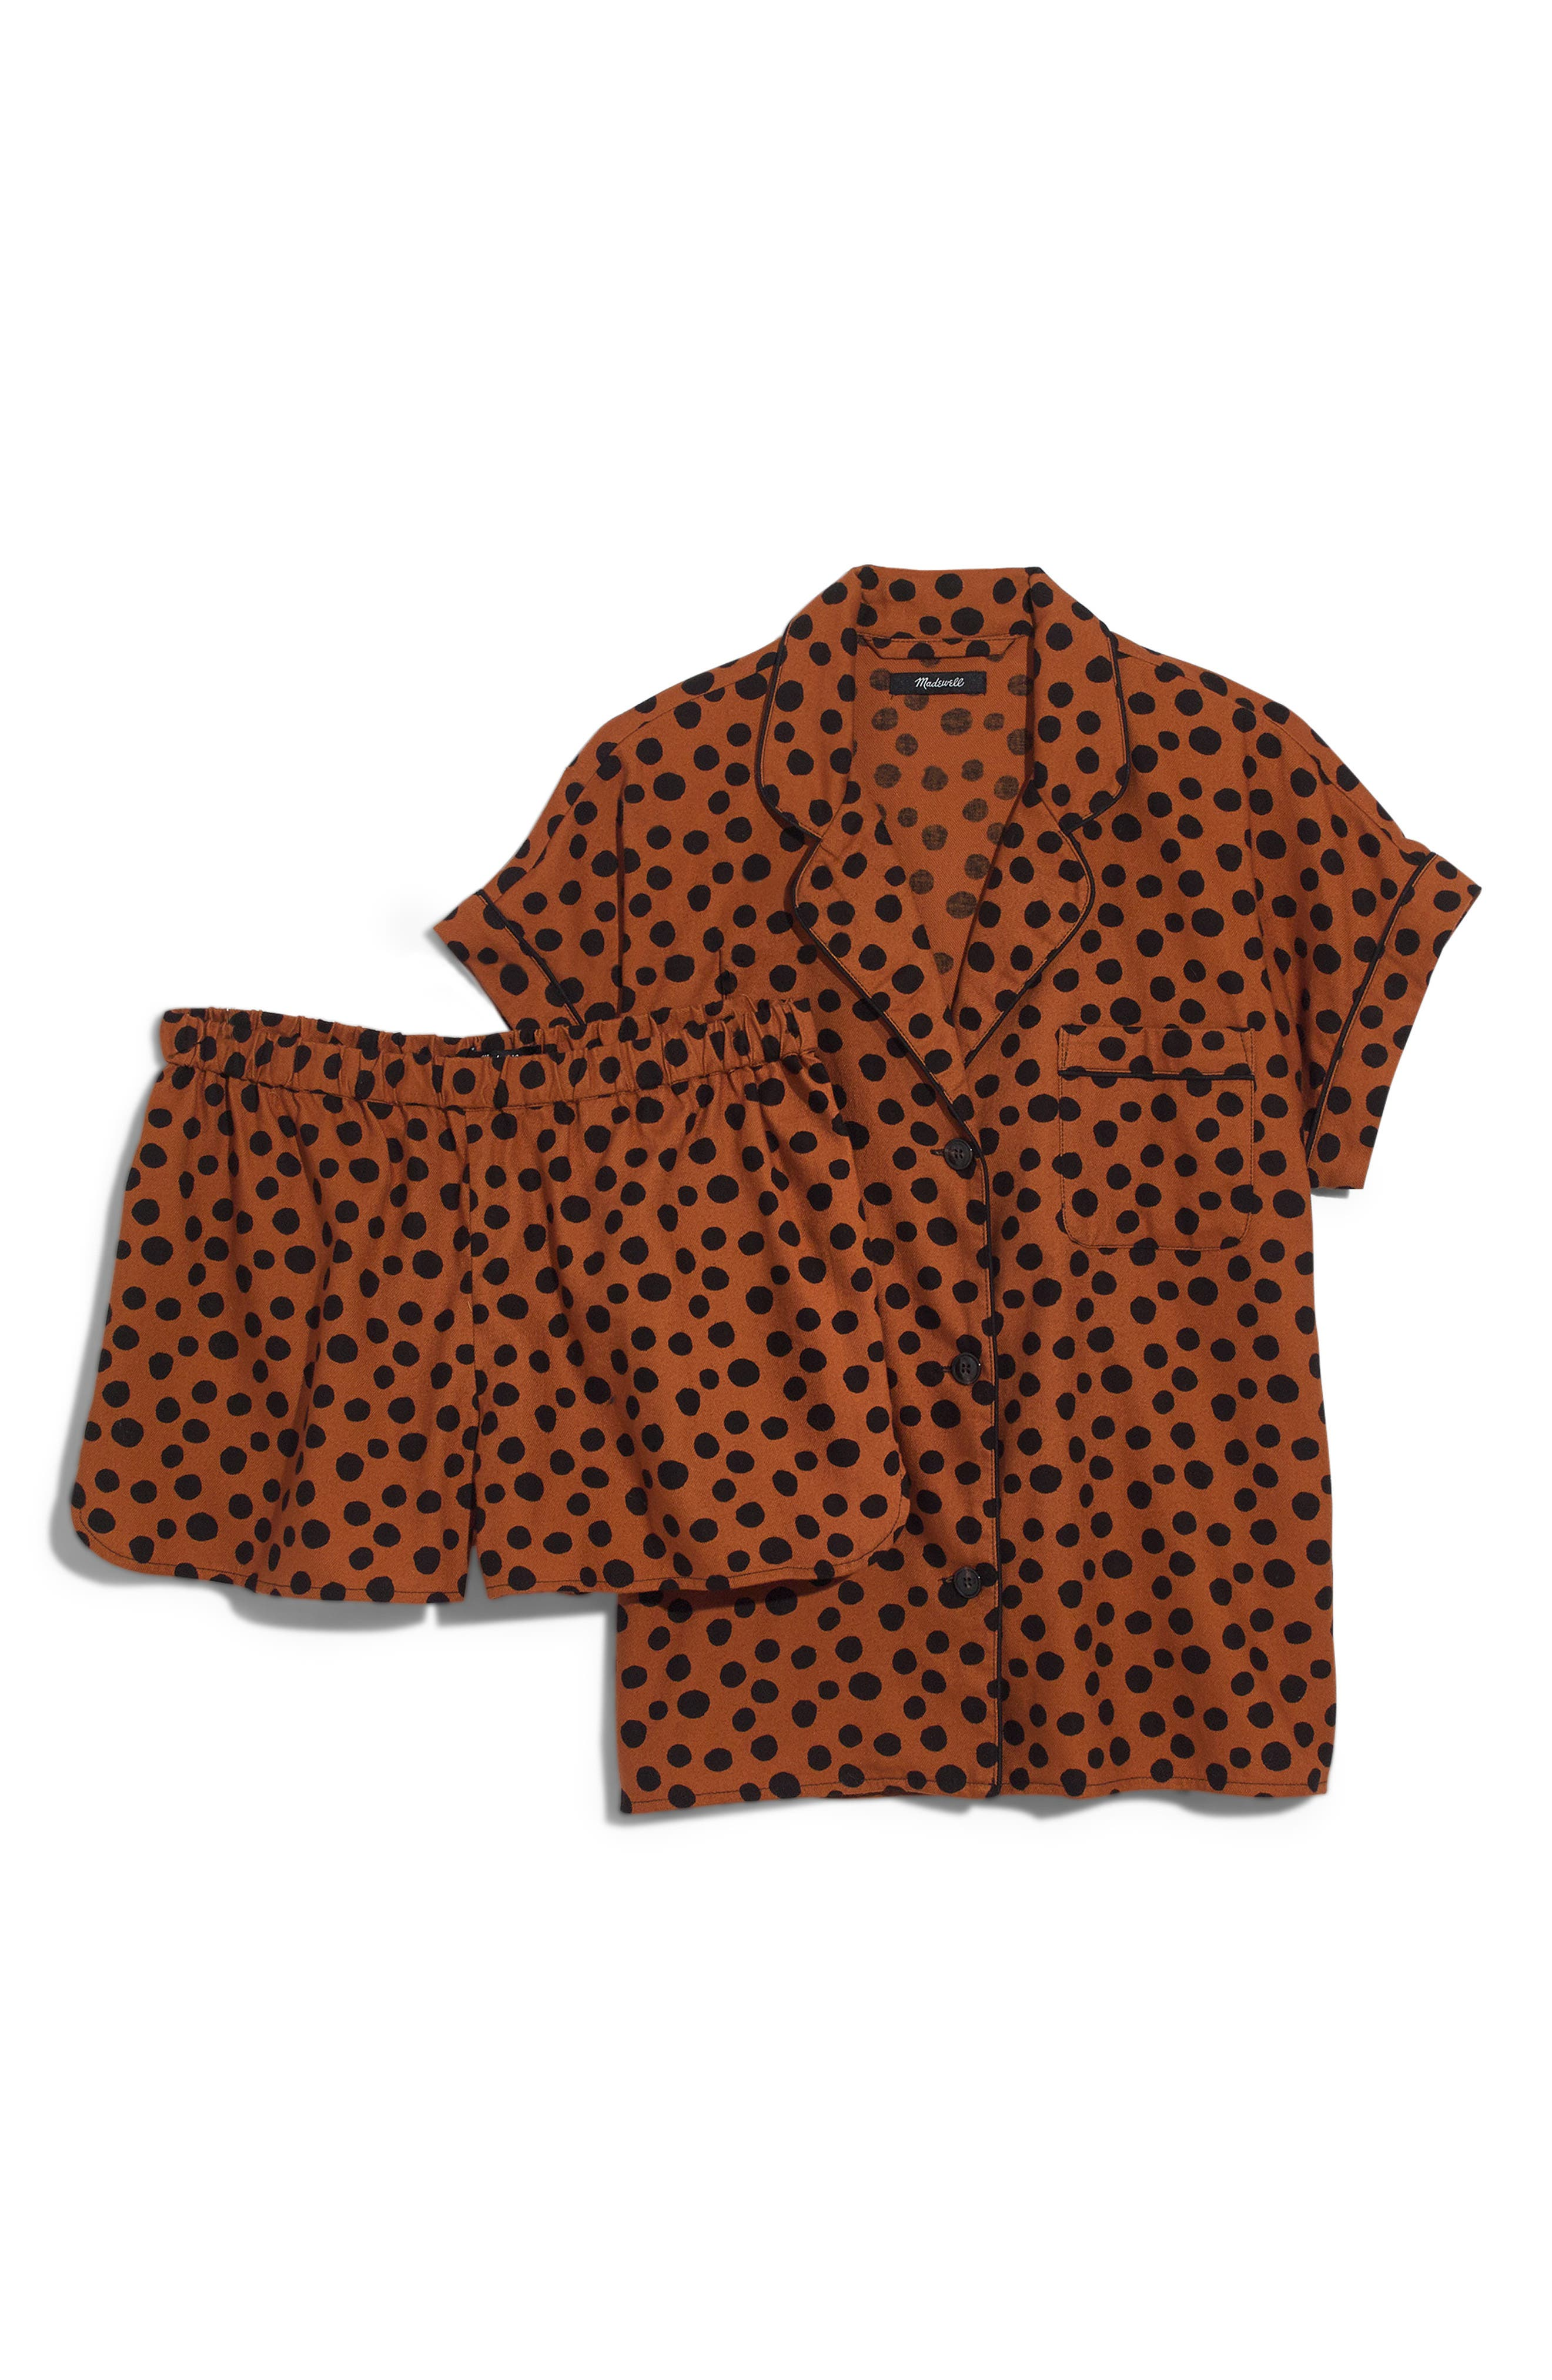 MADEWELL,                             Leopard Dot Flannel Bedtime Pajamas,                             Main thumbnail 1, color,                             200